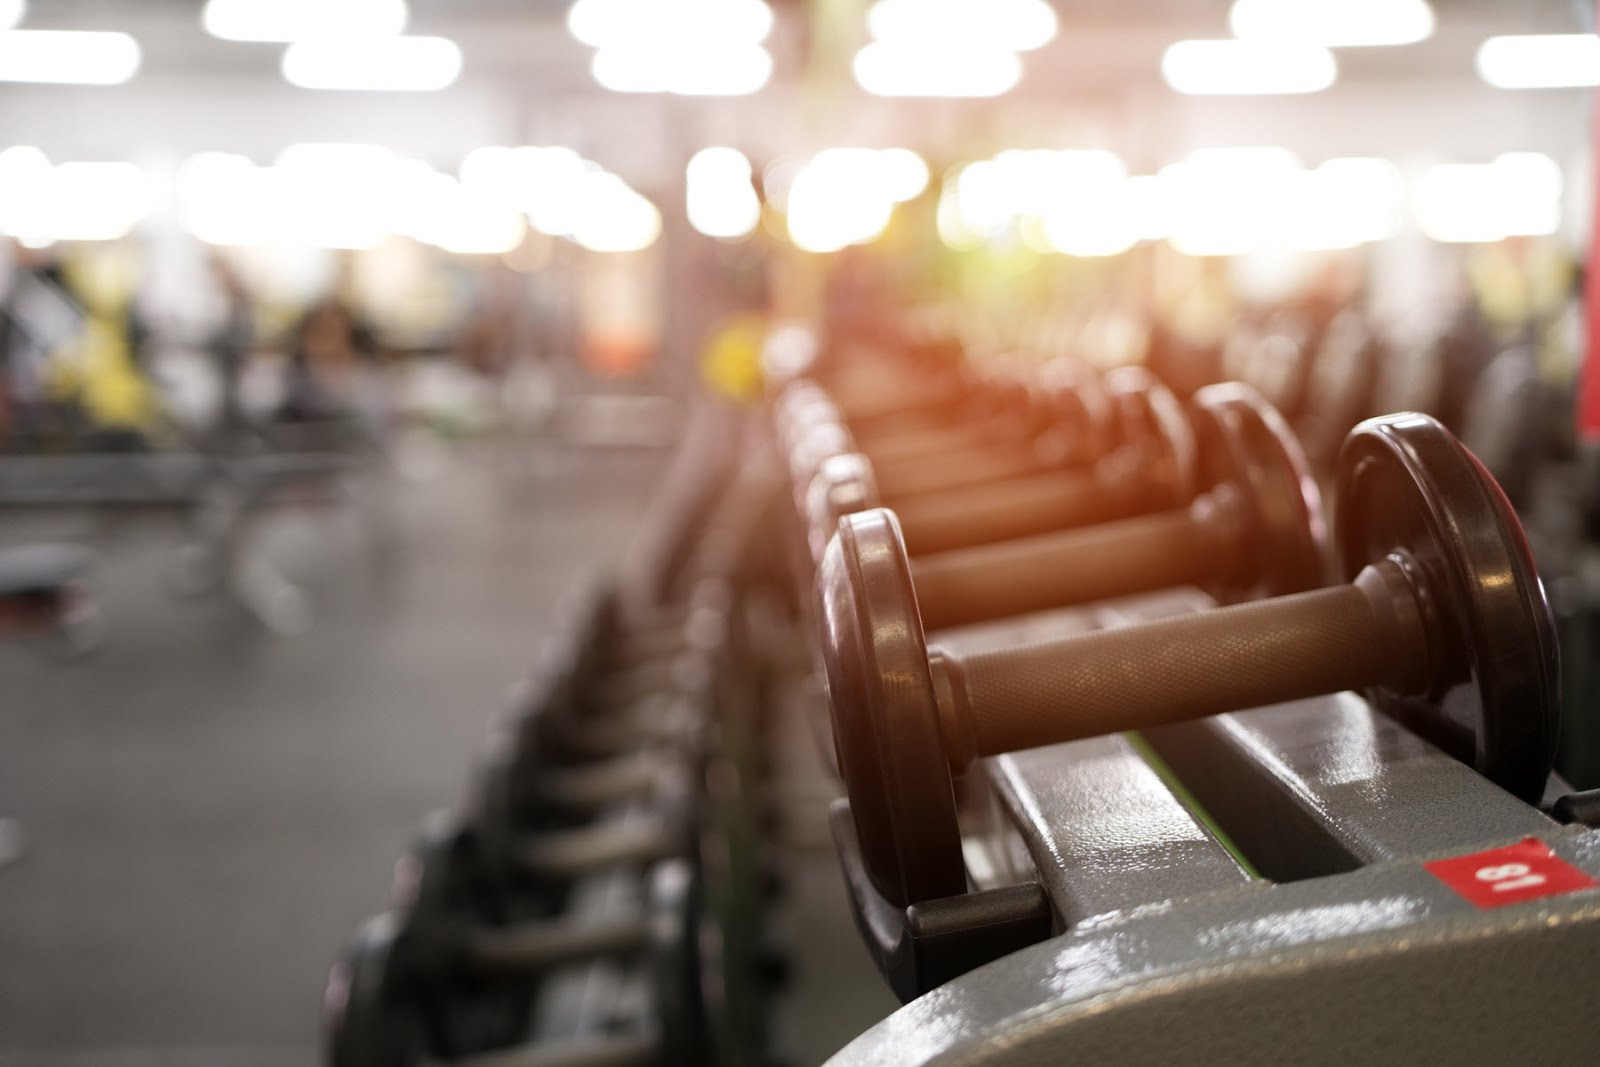 Exercising: Gym & Fitness